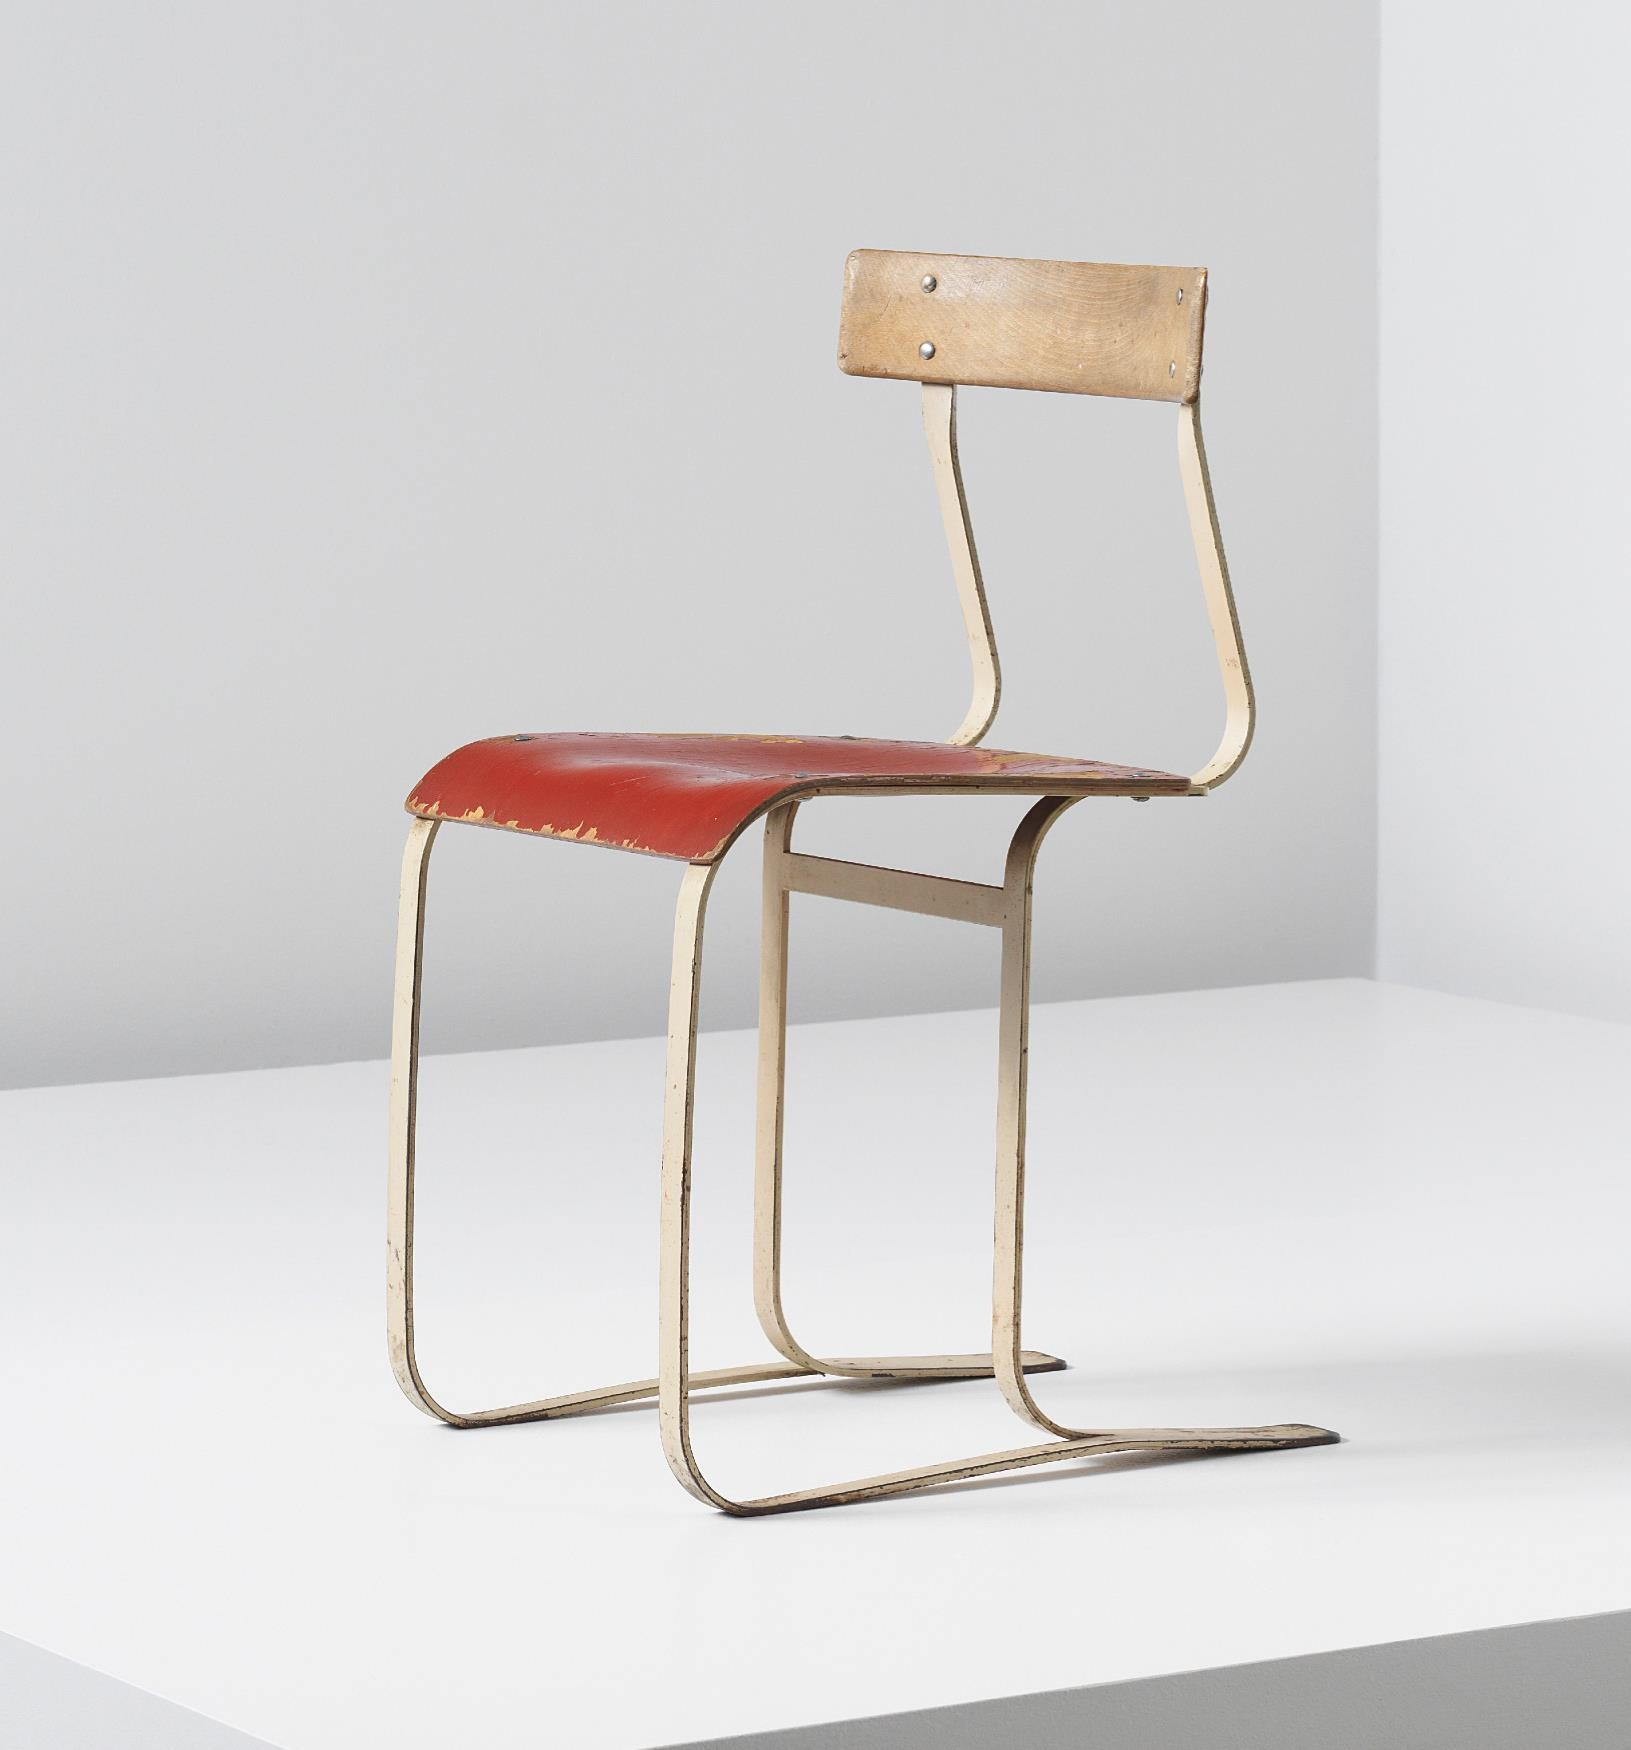 Gallery of Sold 100 Design Relics from Niemeyer Le Corbusier